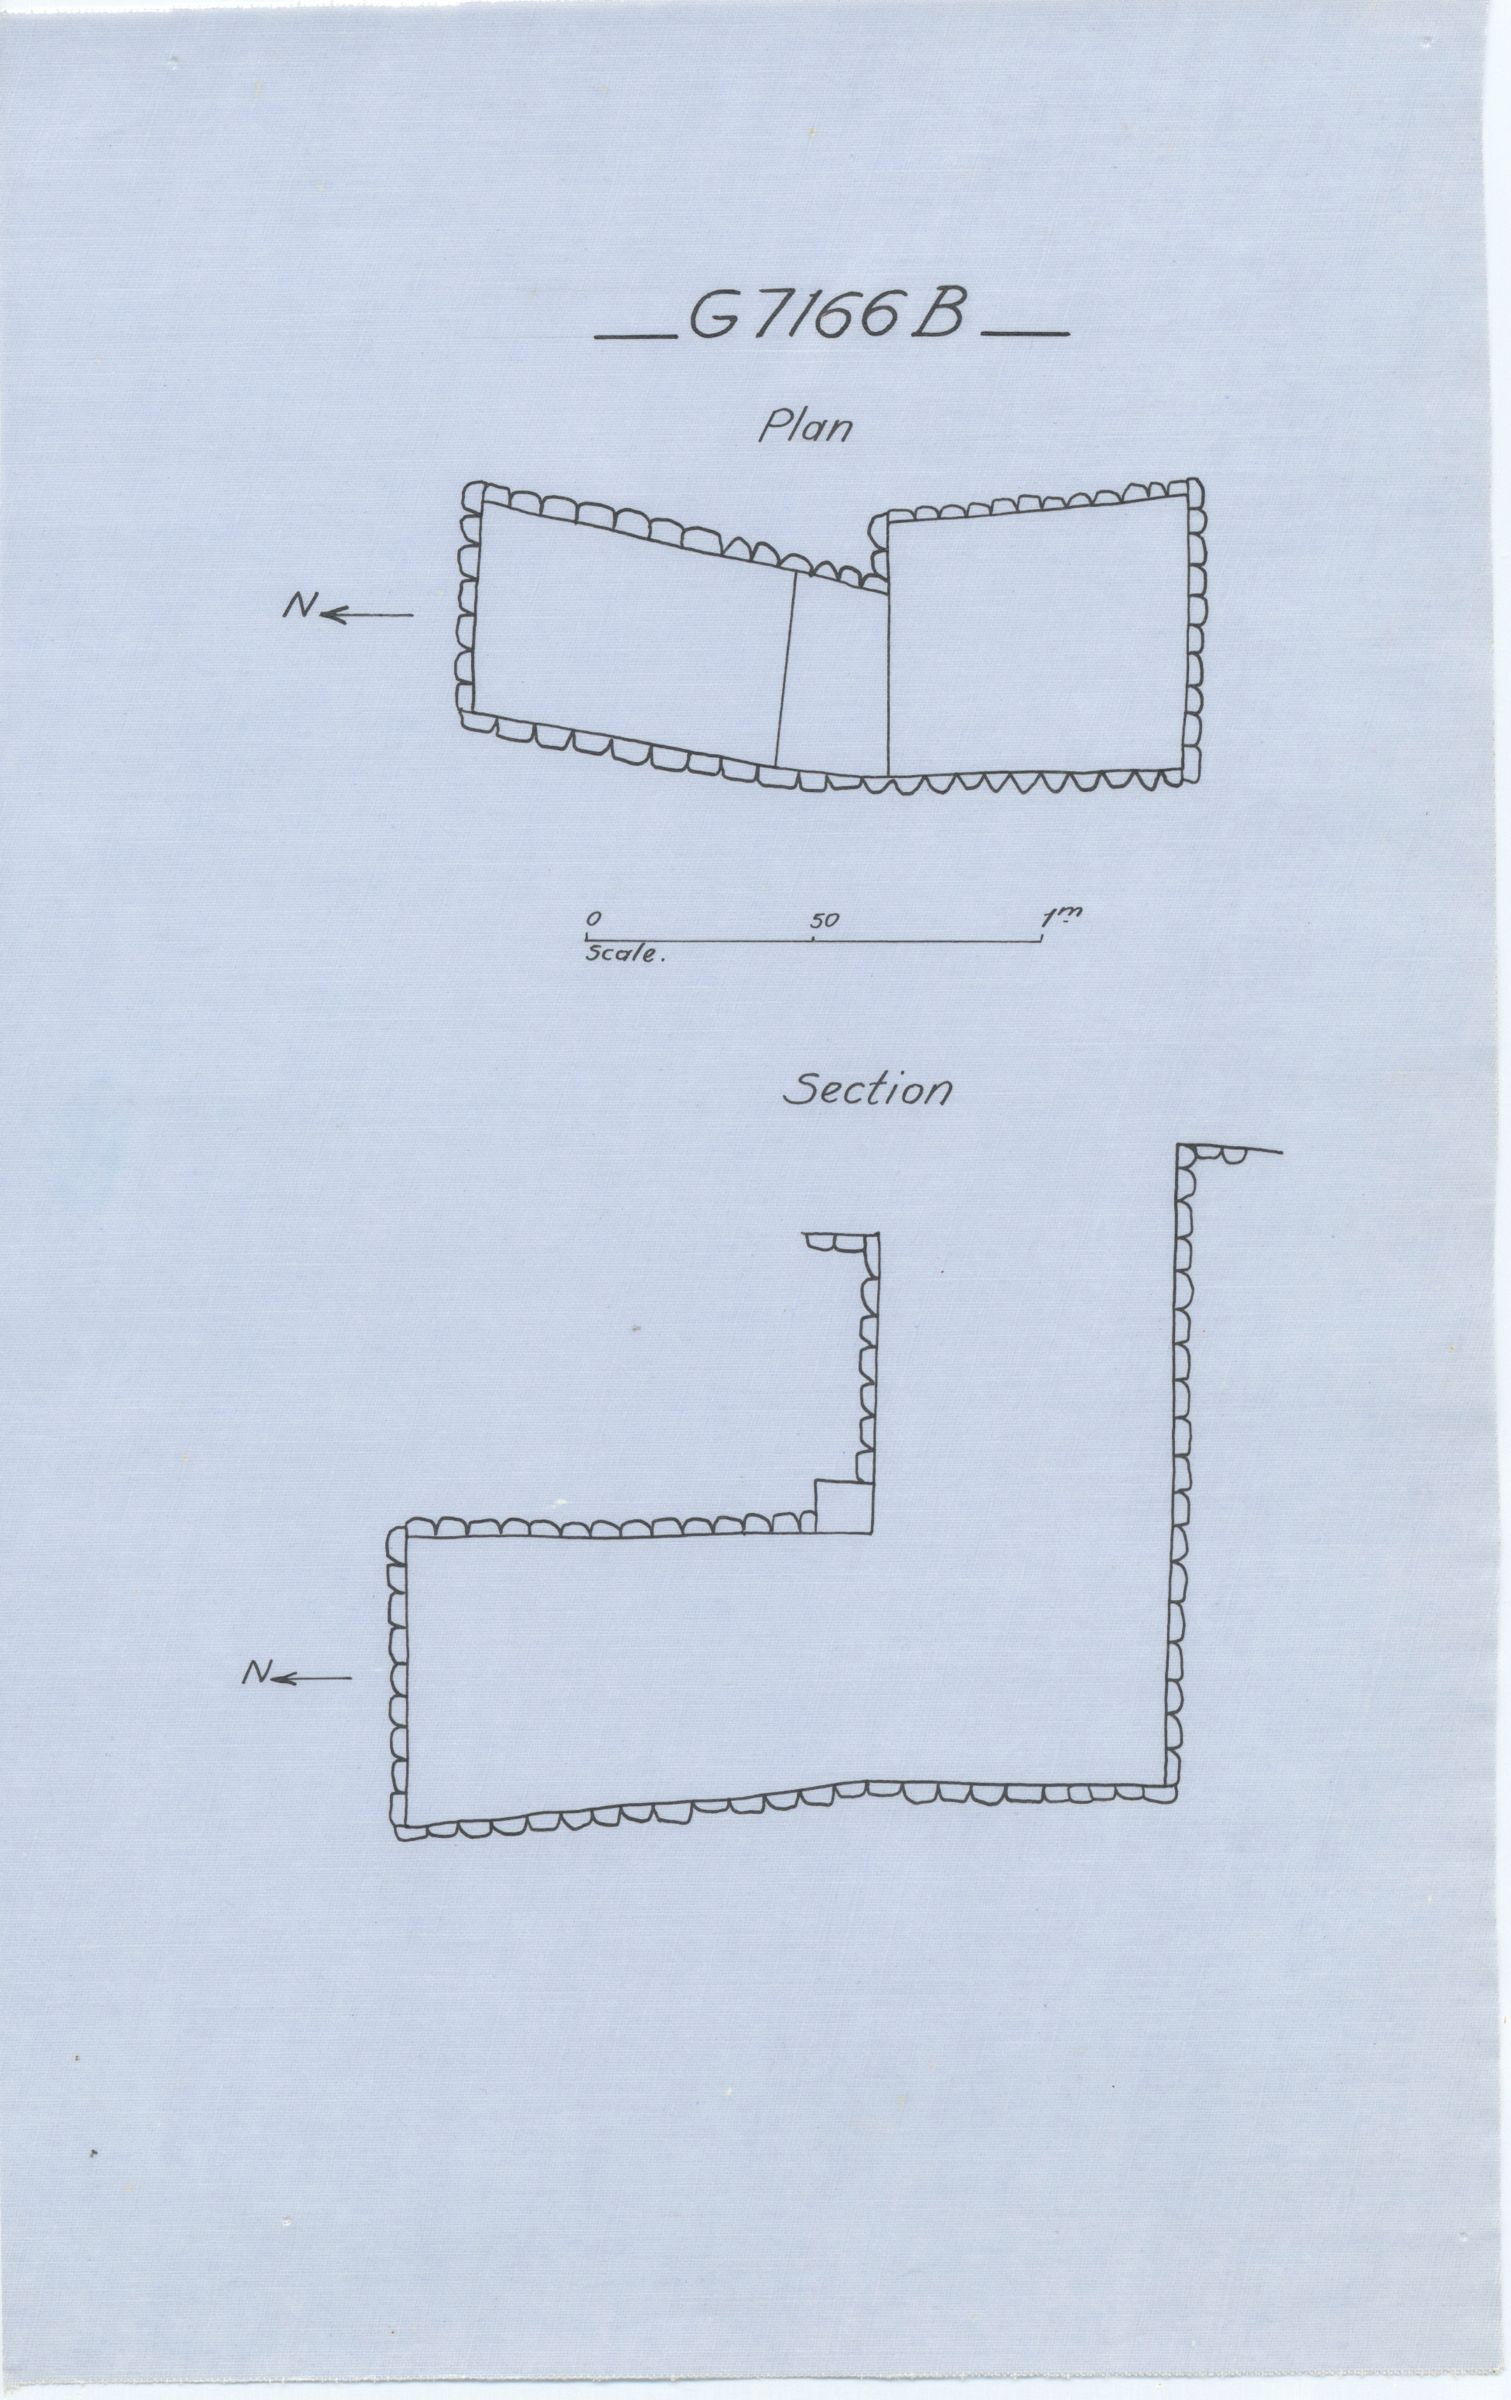 Maps and plans: G 7166, Shaft B